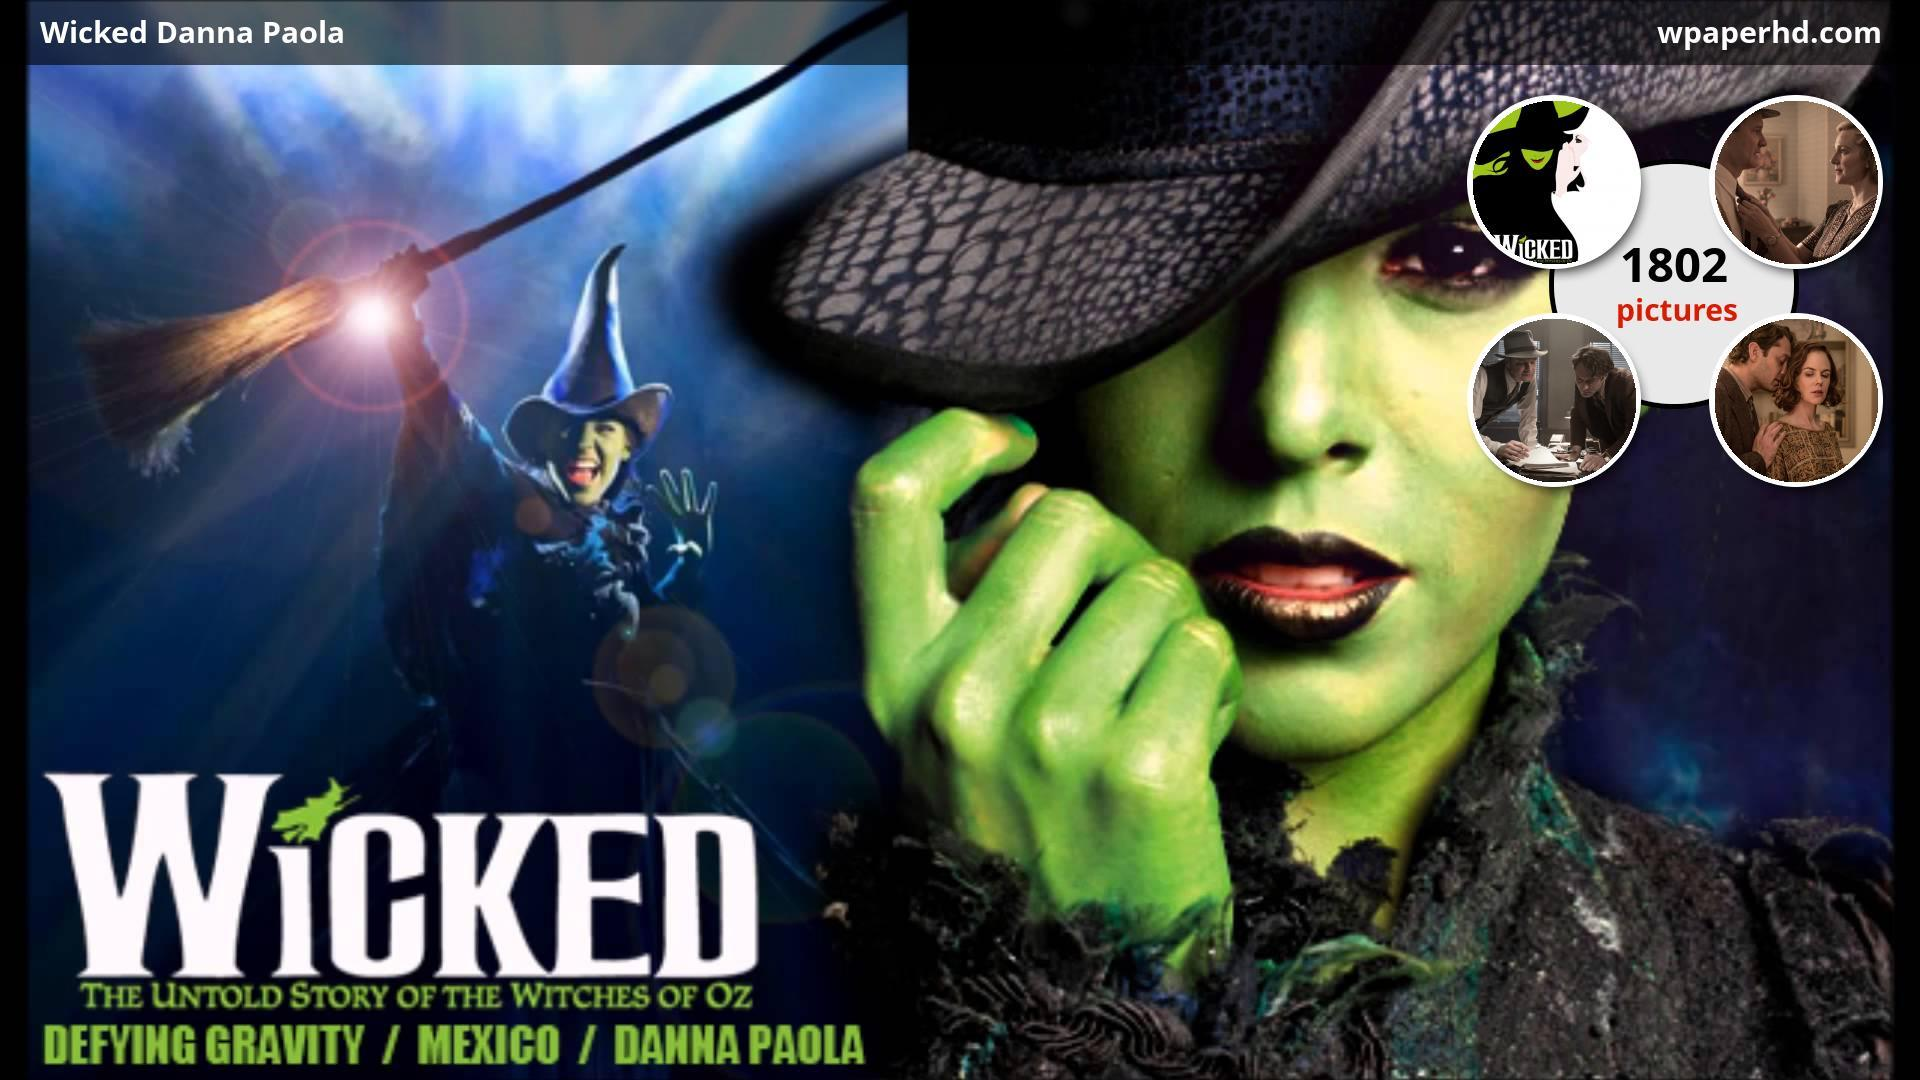 Wicked Danna Paola Wallpaper 2018 In Movies - Wicked Danna Paola , HD Wallpaper & Backgrounds